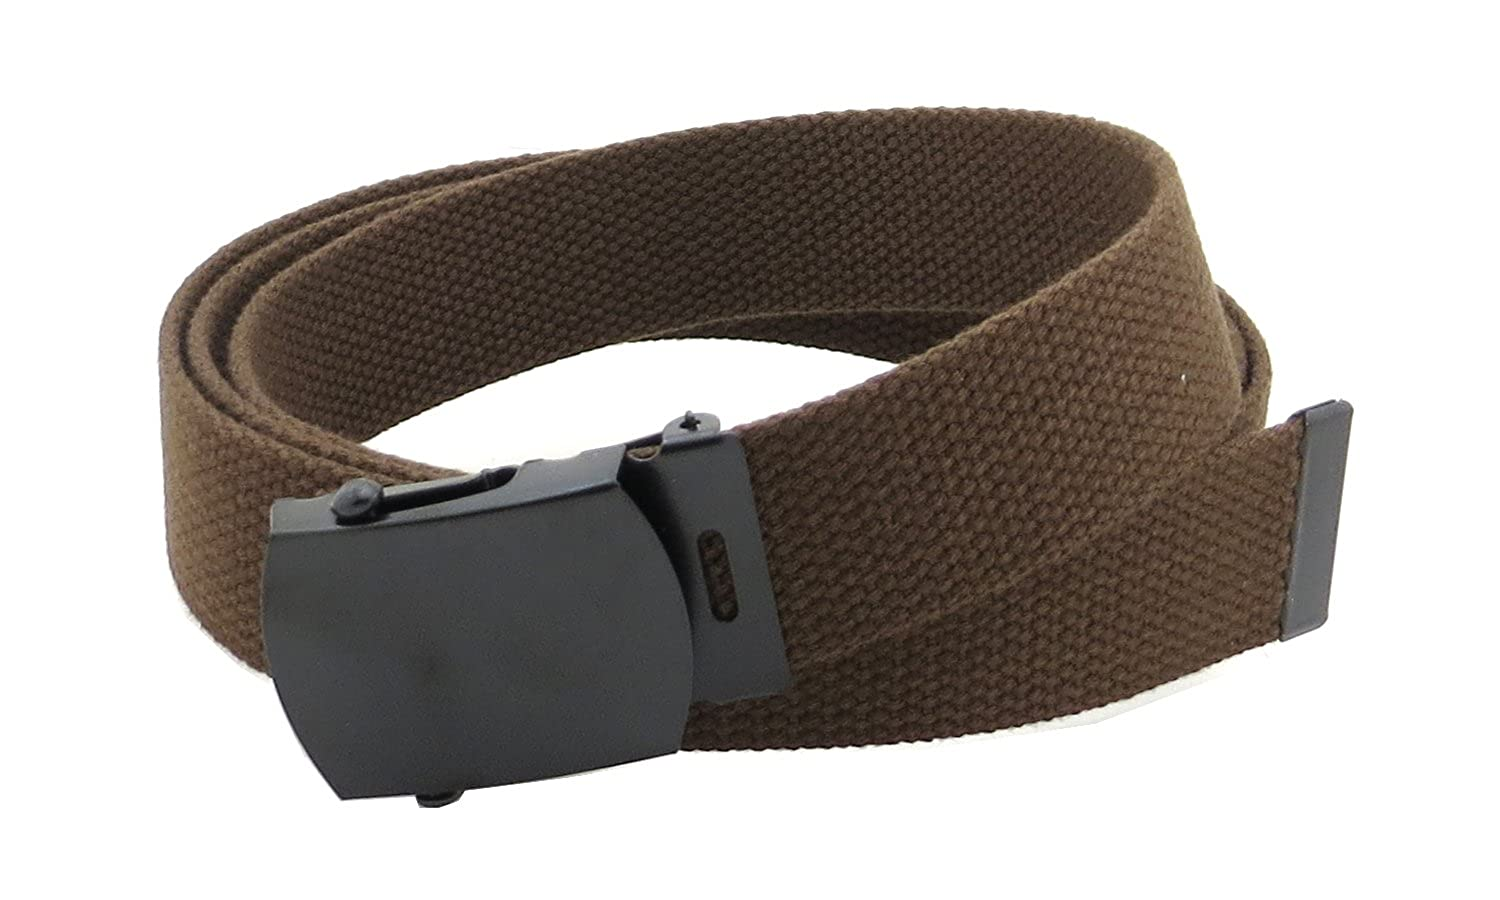 Canvas Web Belt Military Style with Black Buckle and Tip 56 Long Many Colors webblackbuckle-black